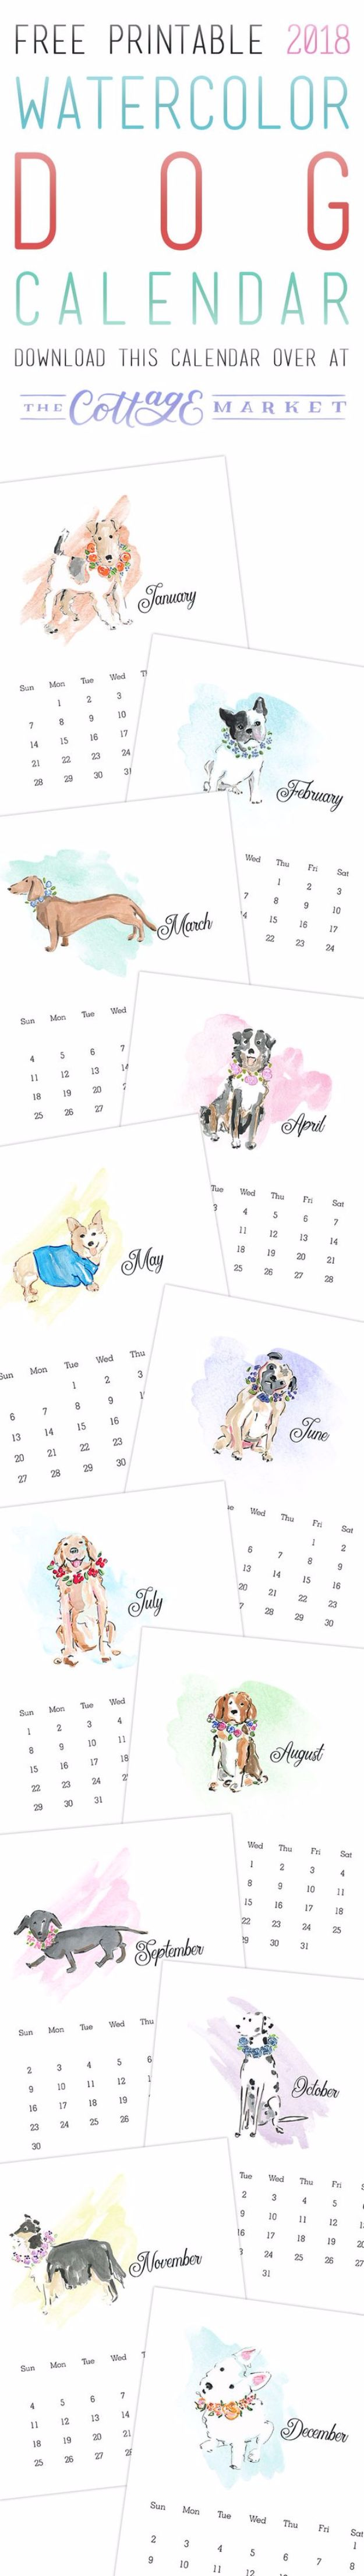 DIY Ideas With Dogs - Watercolor Dog Calendar Free Printable - Cute and Easy DIY Projects for Dog Lovers - Wall and Home Decor Projects, Things To Make and Sell on Etsy - Quick Gifts to Make for Friends Who Have Puppies and Doggies - Homemade No Sew Projects- Fun Jewelry, Cool Clothes and Accessories #dogs #crafts #diyideas